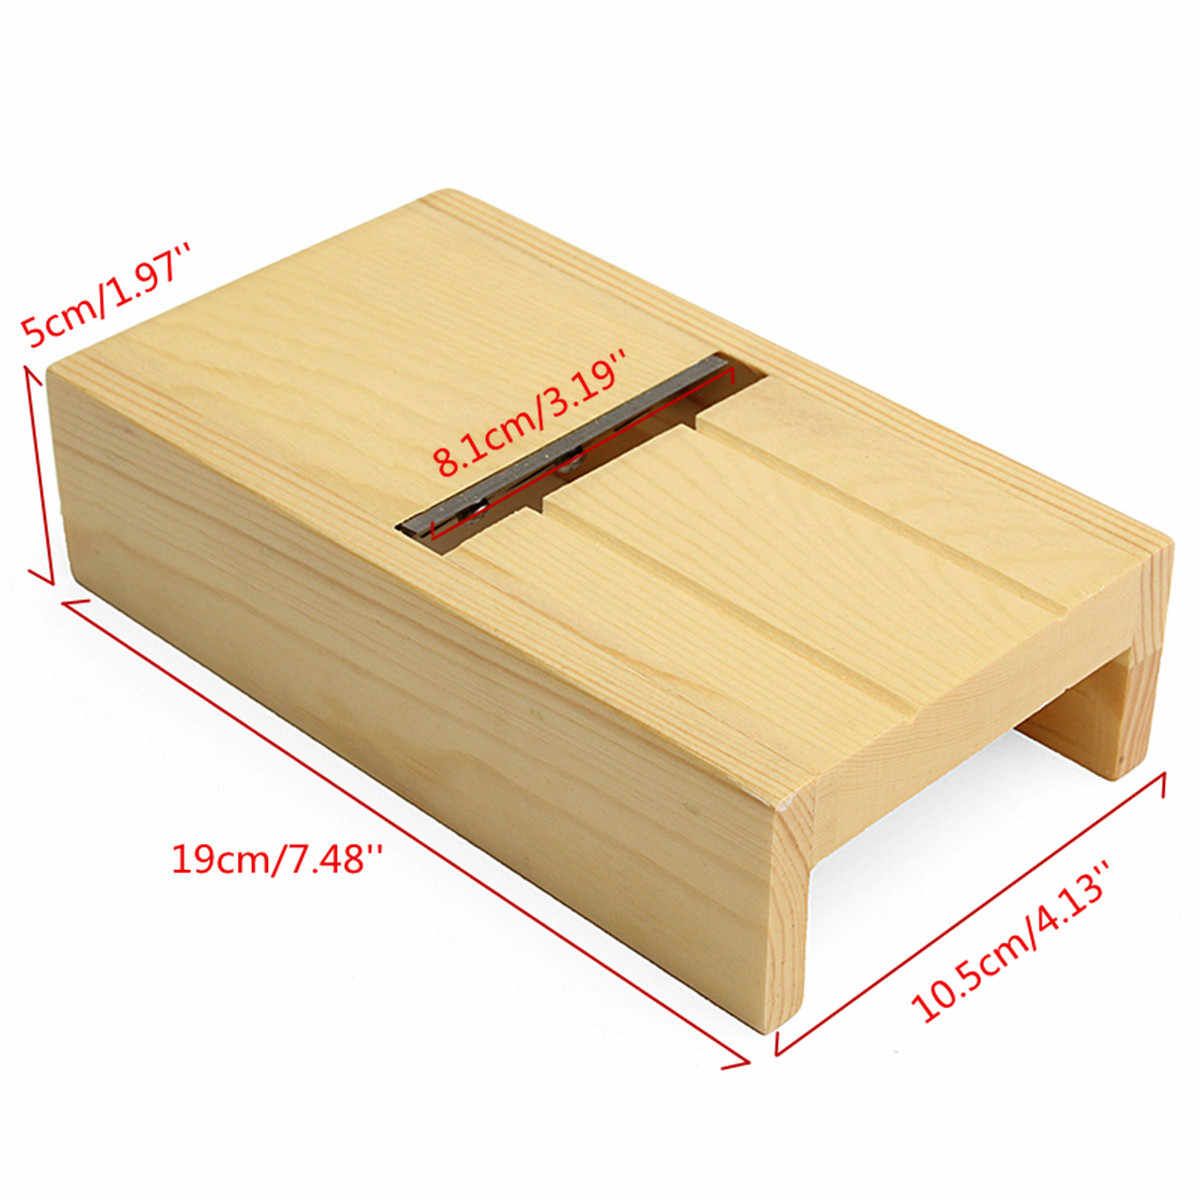 New Wooden Beveler Planer Sharped Blade Handmade Soap Candle Loaf Mold Cutter Craft Making Tool Soap Kits Cutting Tools